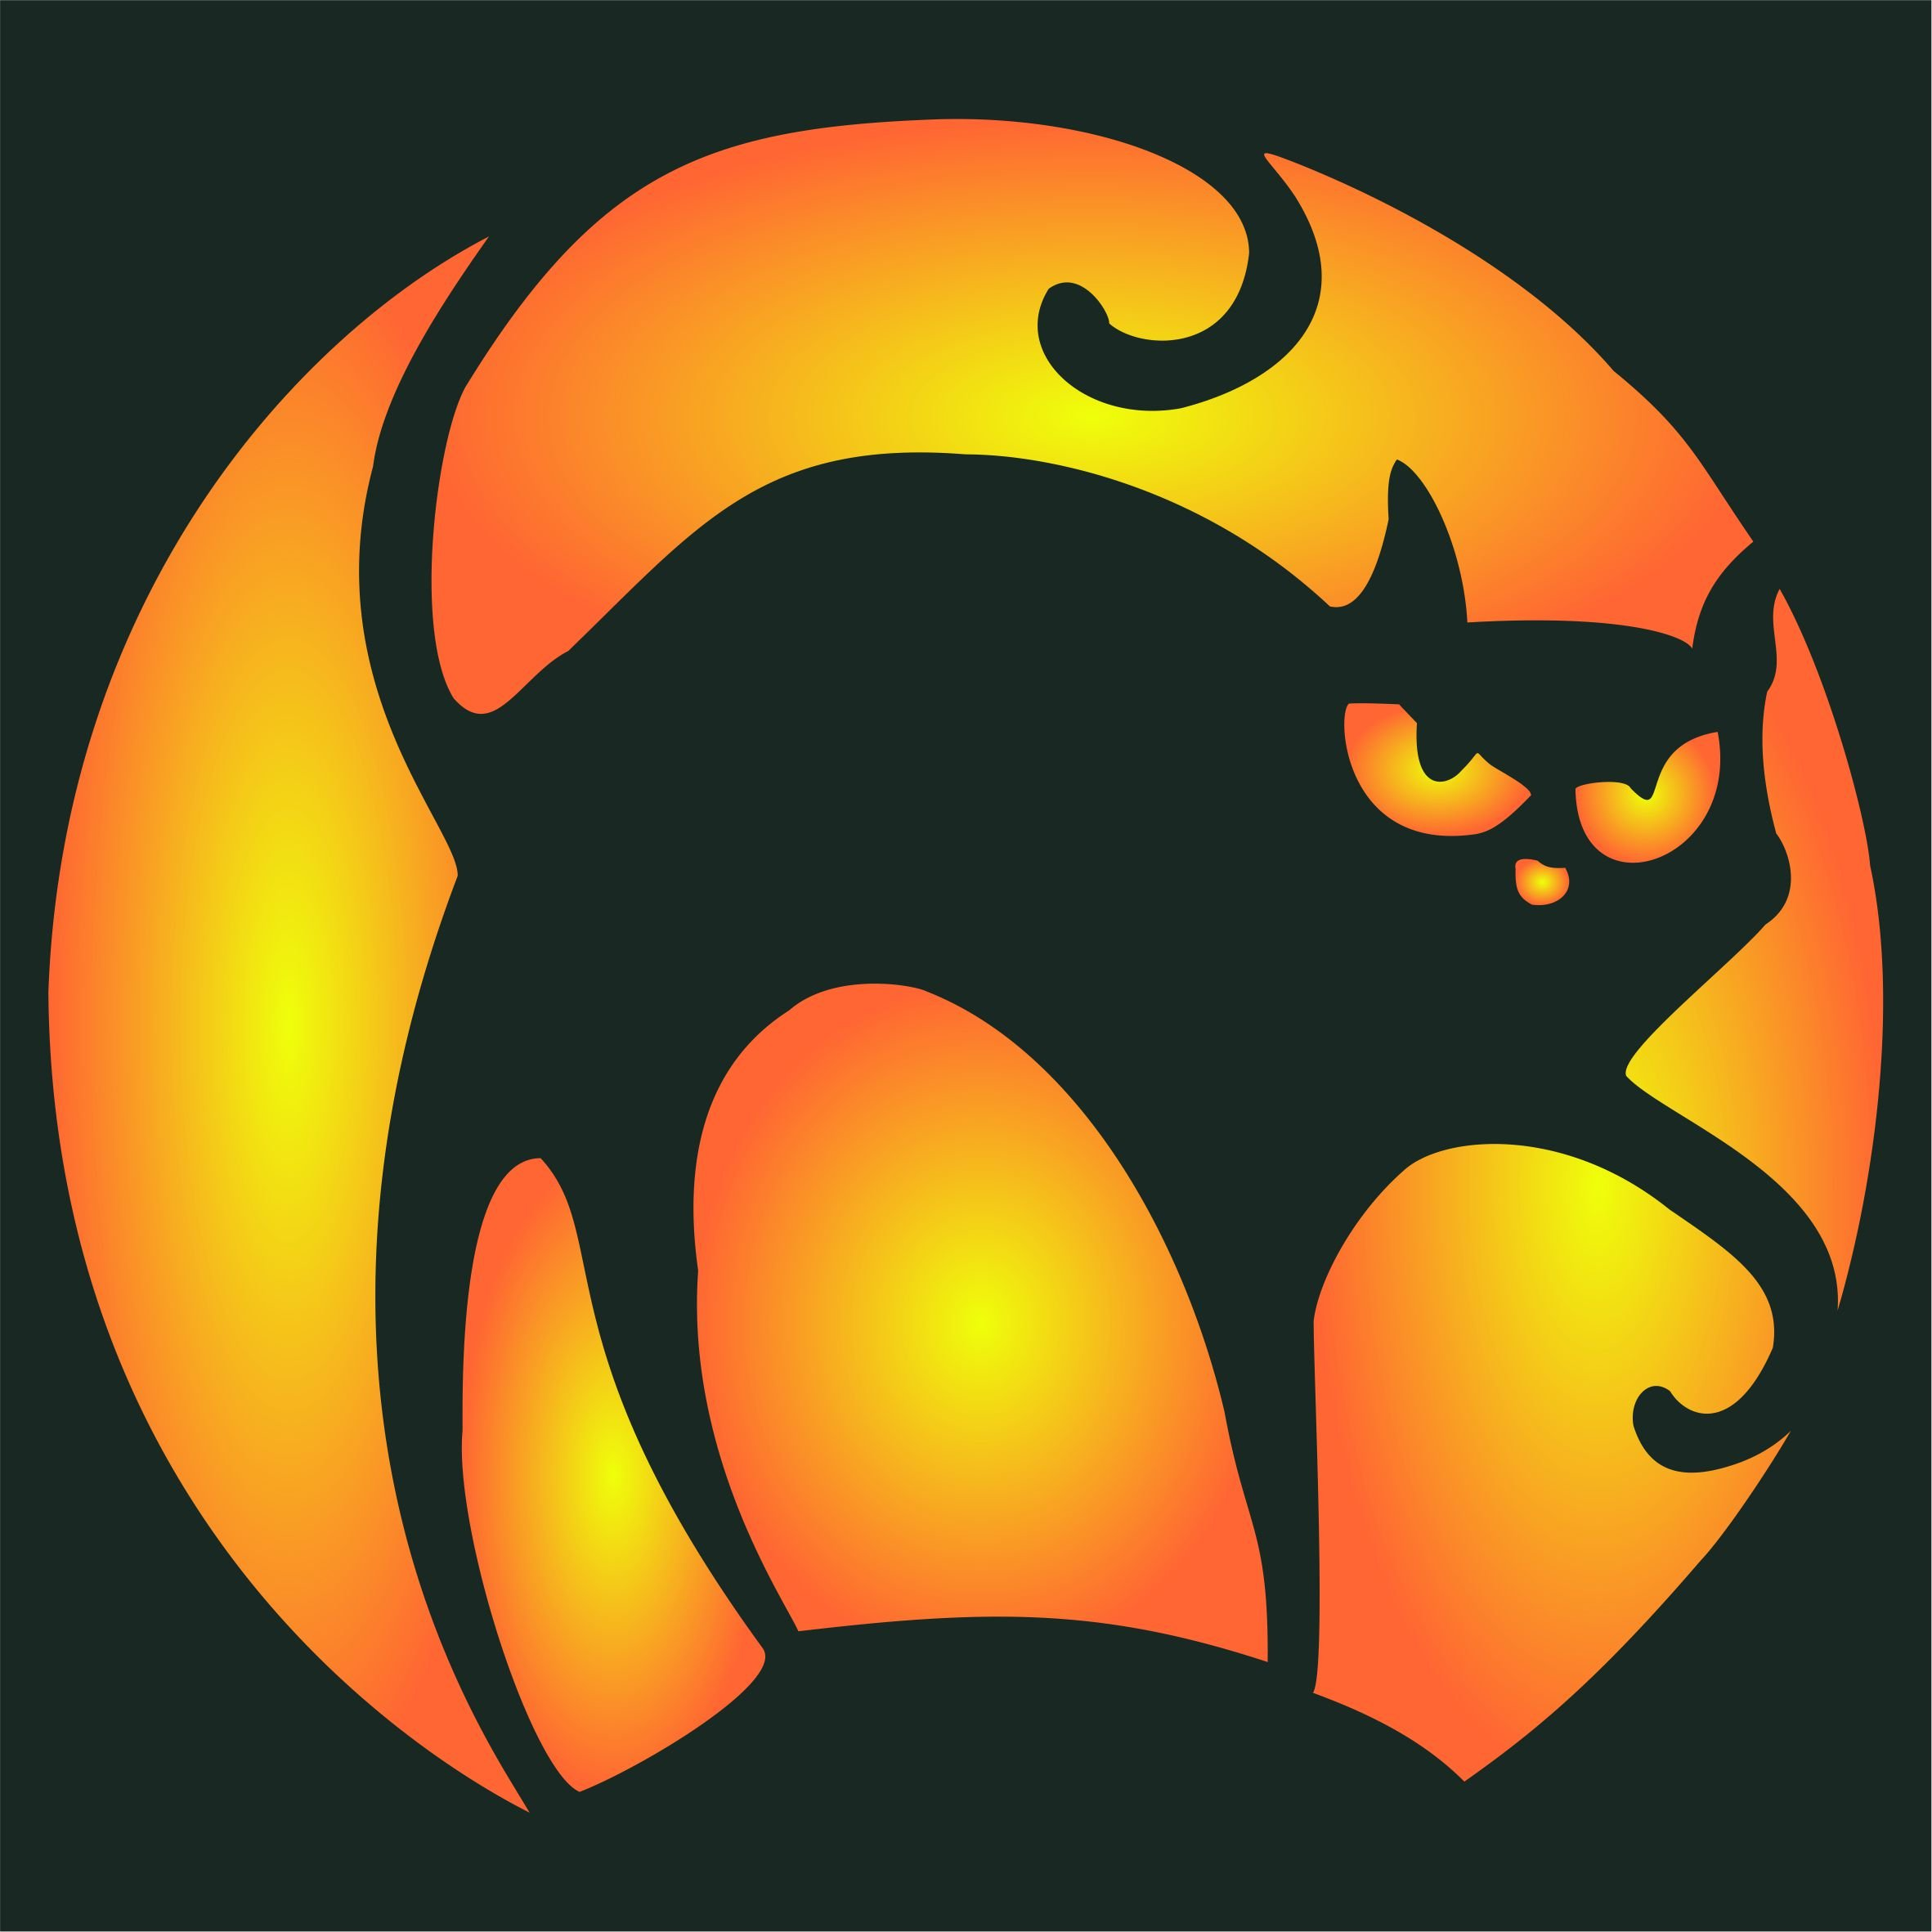 Halloween Cat Stencil - (Size 8''w x 7.5''h) Reusable Wall Stencils for Painting - Best Quality Decor Ideas - Use on Walls, Floors, Fabrics, Glass, Wood, and More... by Stencils for Walls